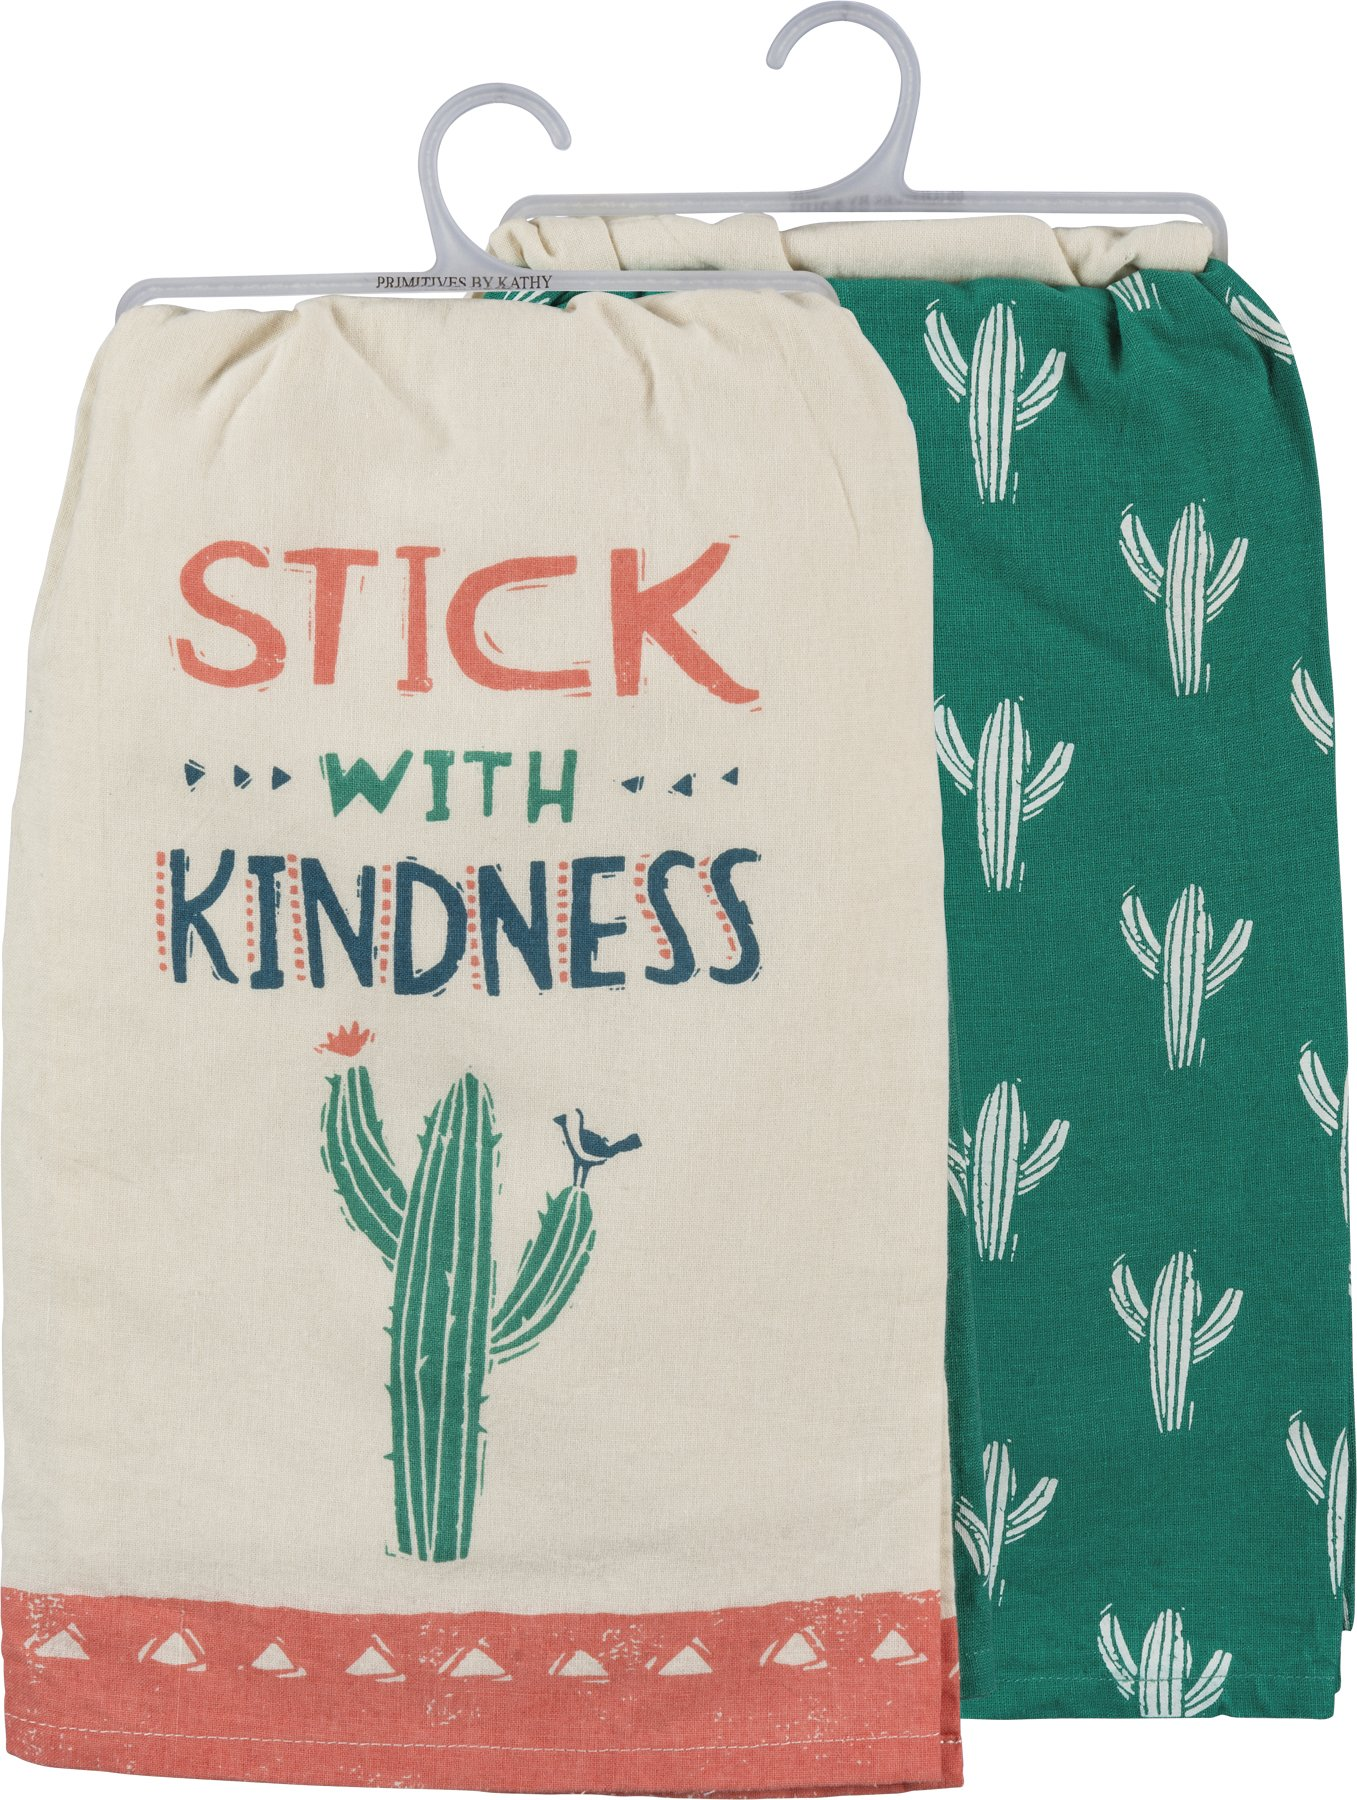 Primitive by Kathy Dish Towel Set - Stick with Kindness